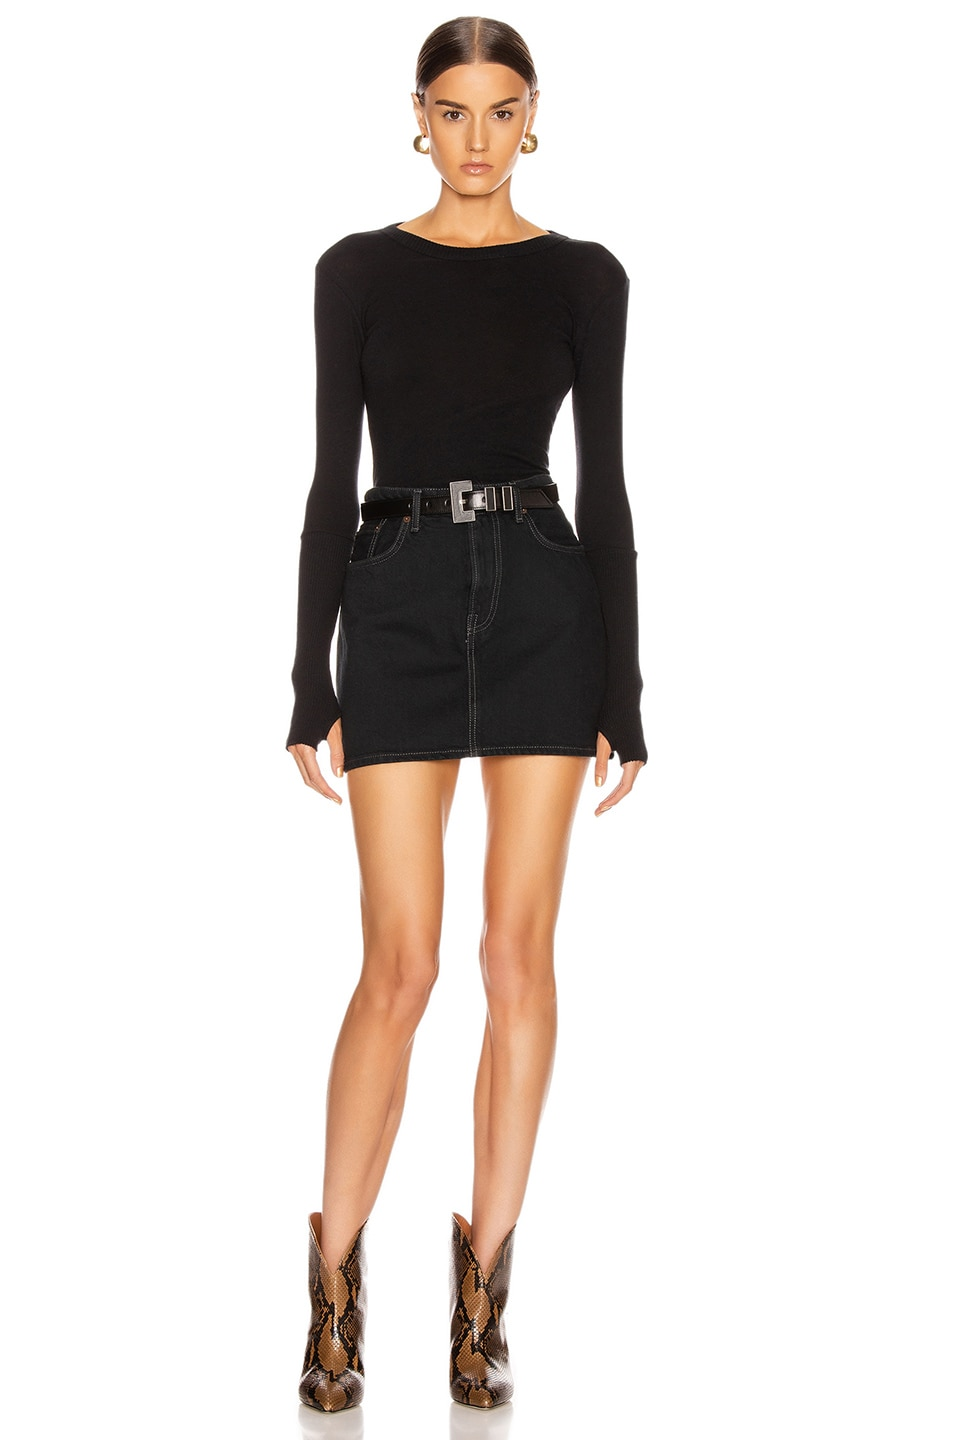 Image 5 of Enza Costa Cashmere Long Sleeve Crew Bodysuit in Black